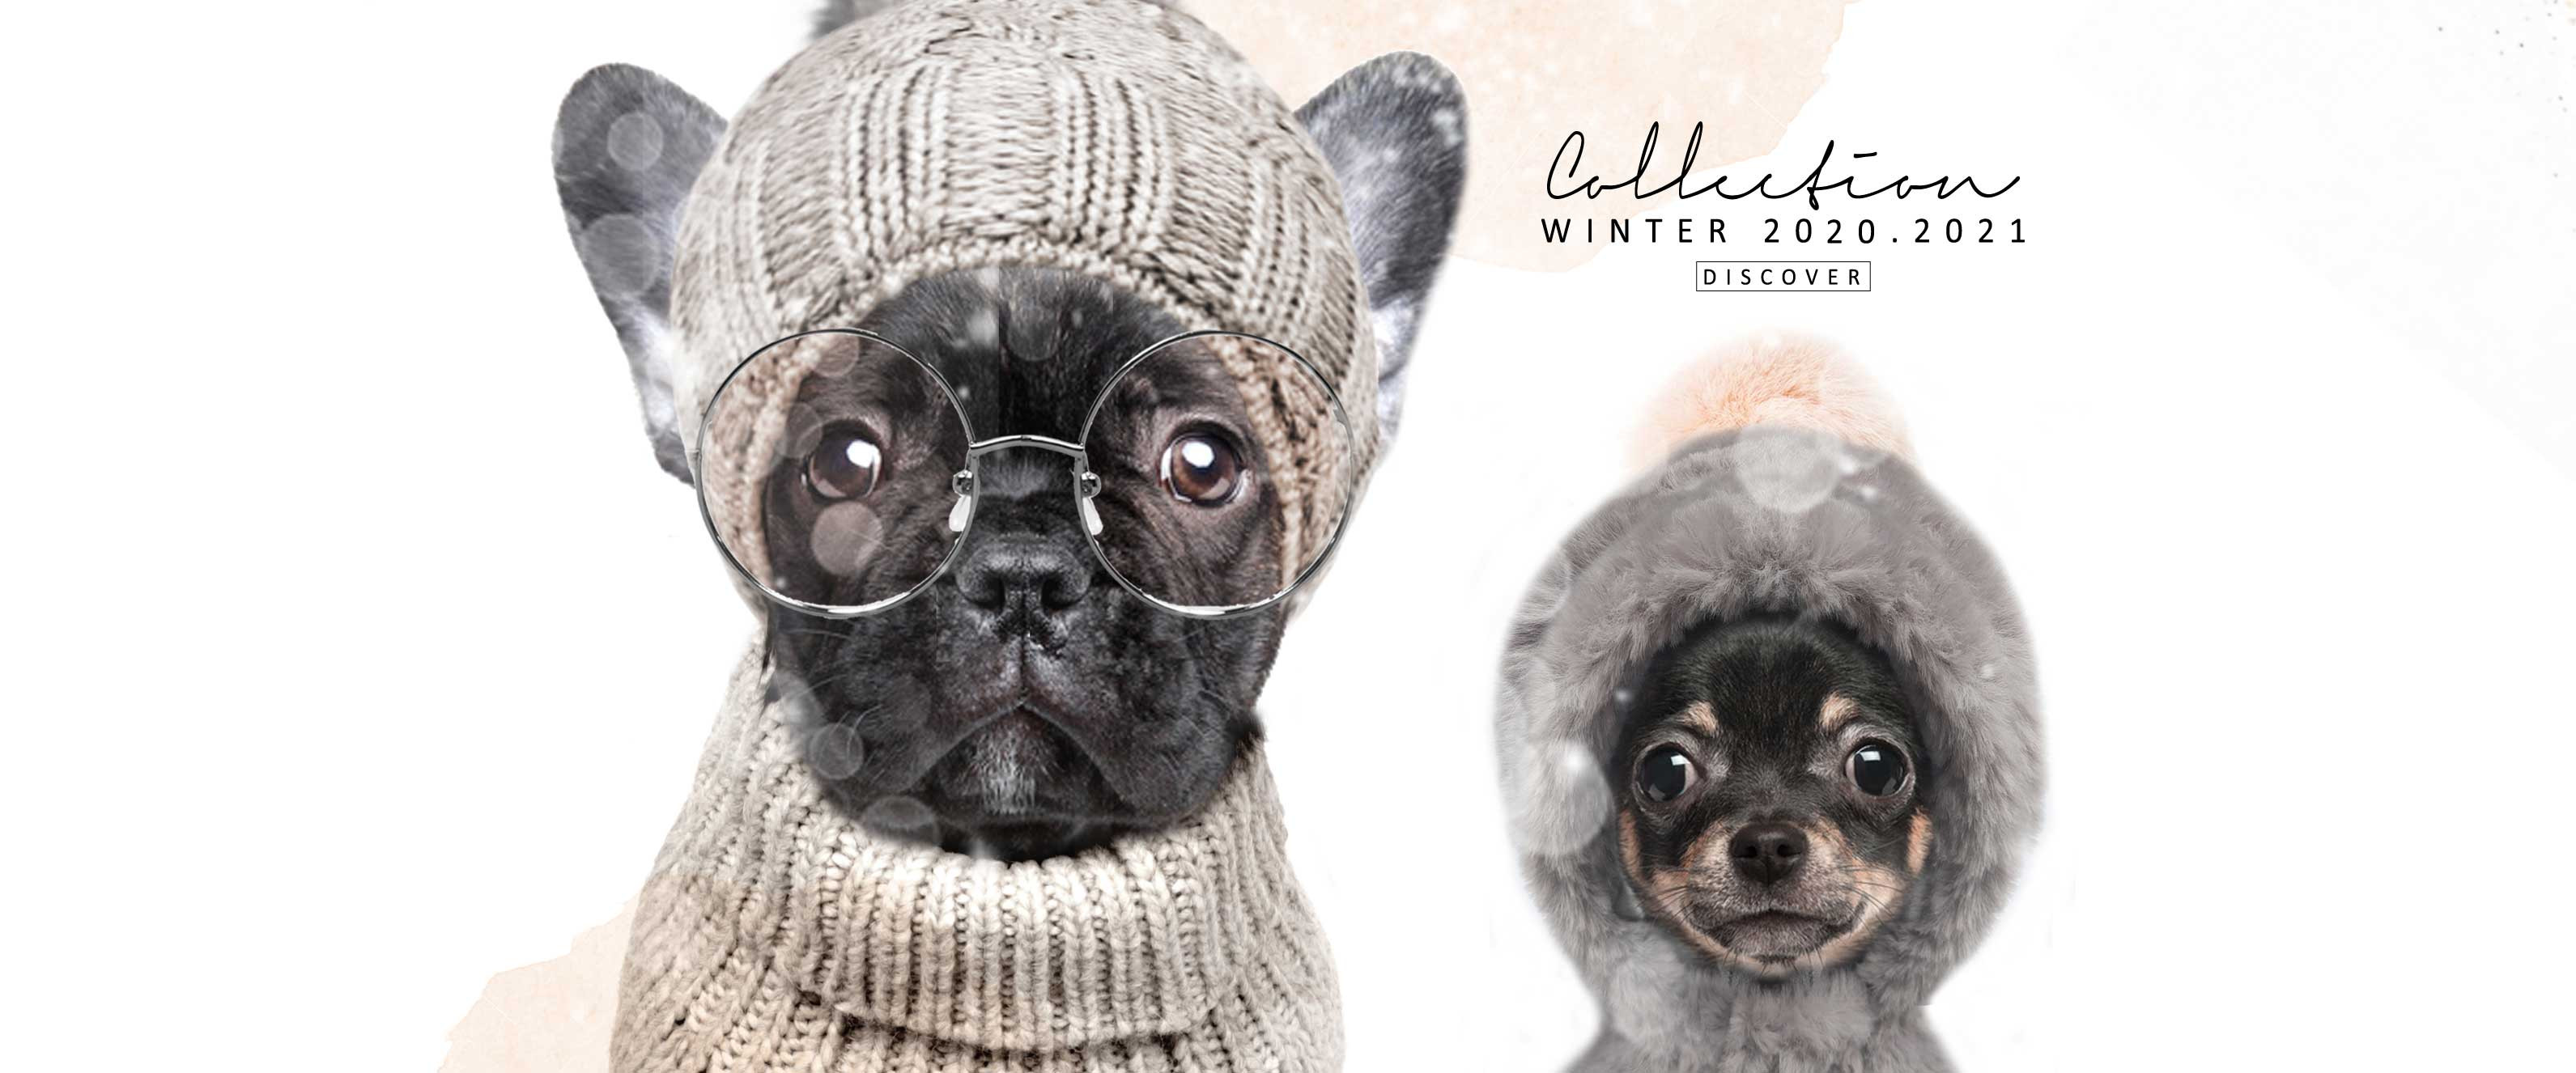 Milk & Pepper, Fashion And Accessories For Dogs & Cats - Fashion Winter 2020